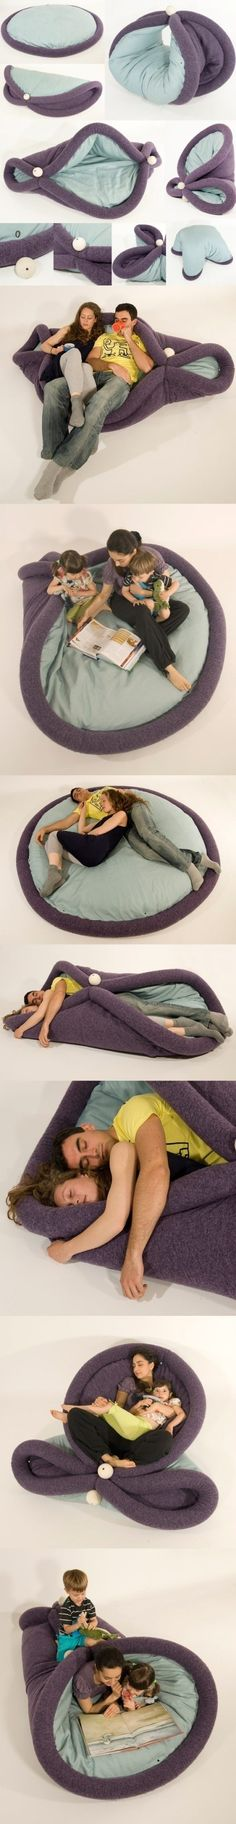 idk what this is exactly, but i want it.